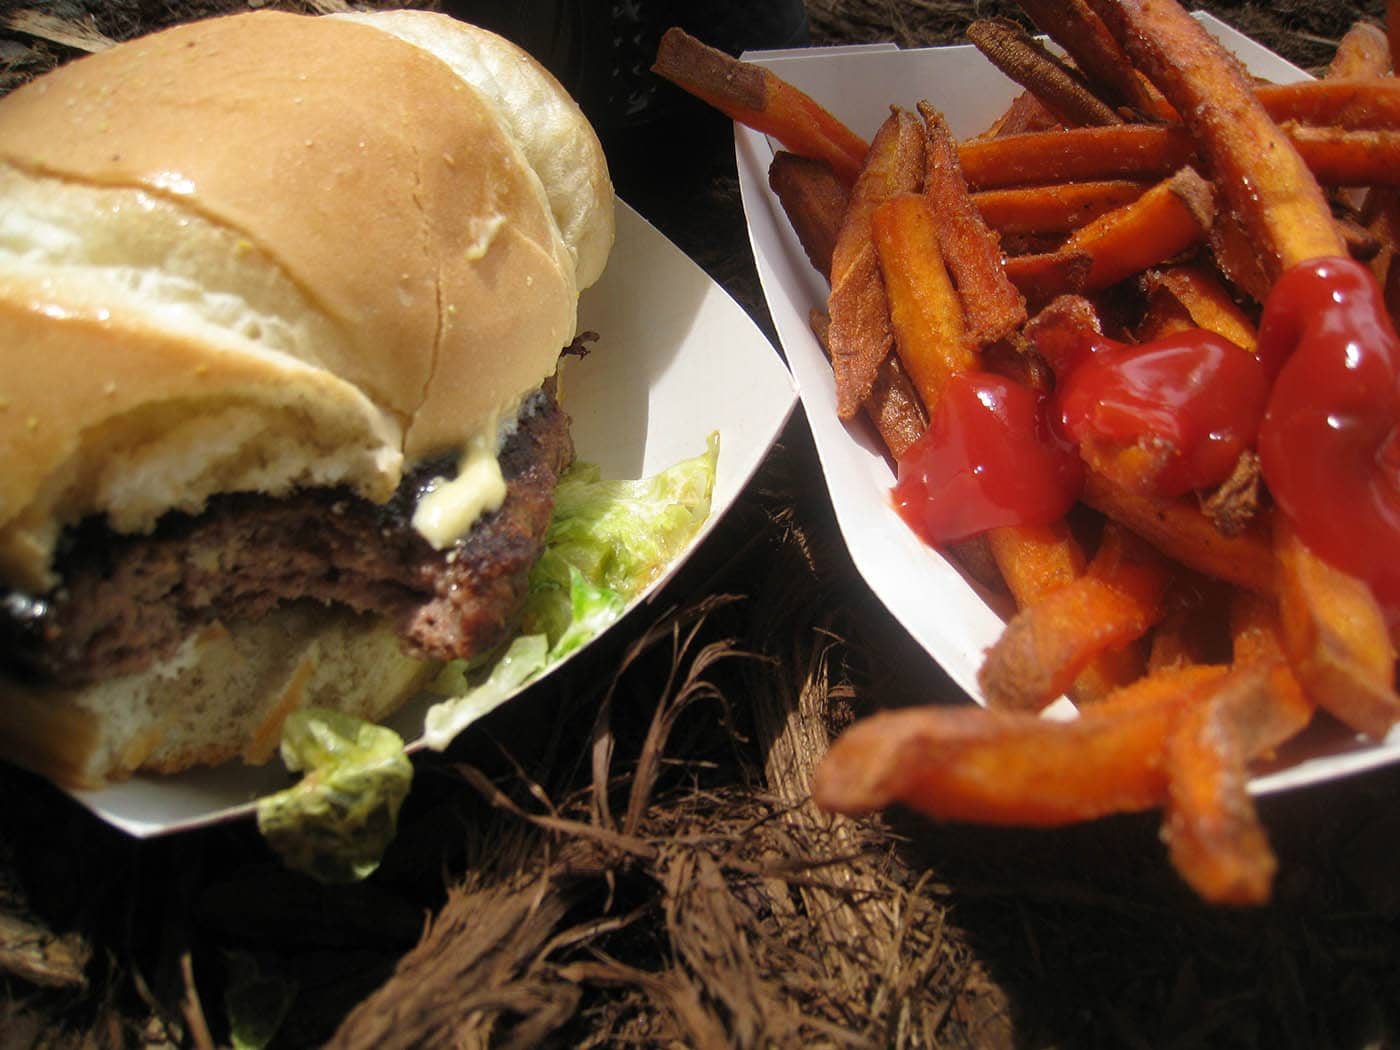 Taste of Chicago: Steak Burger with Blue Cheese and mustard sauce (Tutto Italiano), Hand-cut Sweet Potato Fries (Hashbrowns)